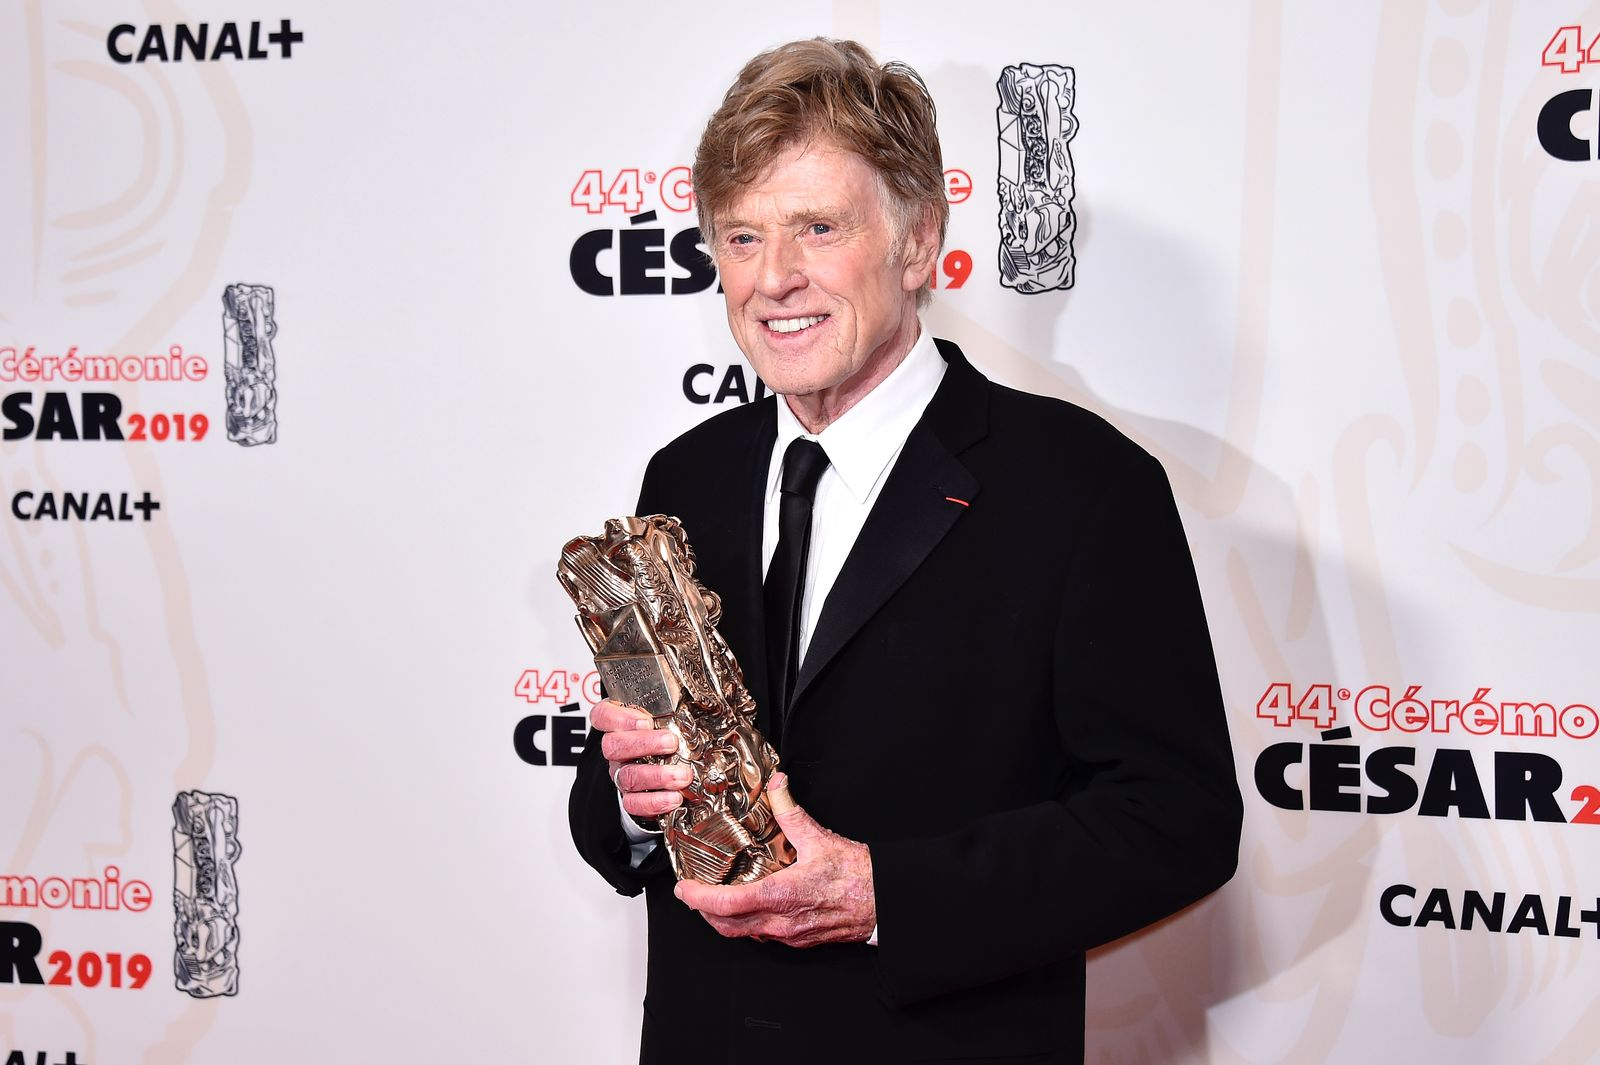 Robert Redford à la Salle Pleyel le 22 février 2019 à Paris, France. | Photo : Getty Images